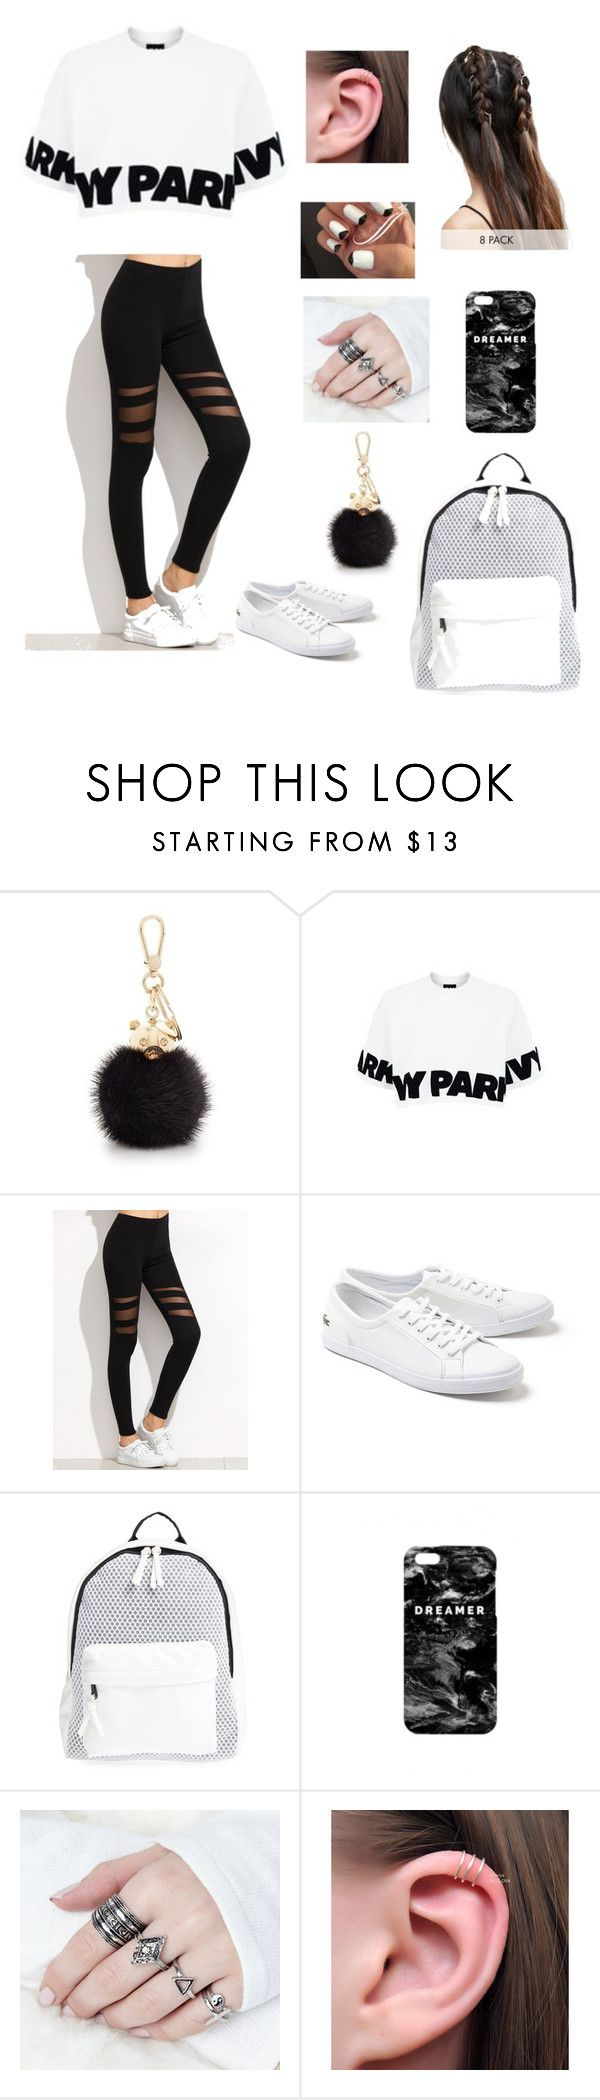 """""""black and white Ivy Park"""" by leaelias ❤ liked on Polyvore featuring Furla, Topshop, Lacoste, Poverty Flats, Mr. Gugu & Miss Go and ASOS"""